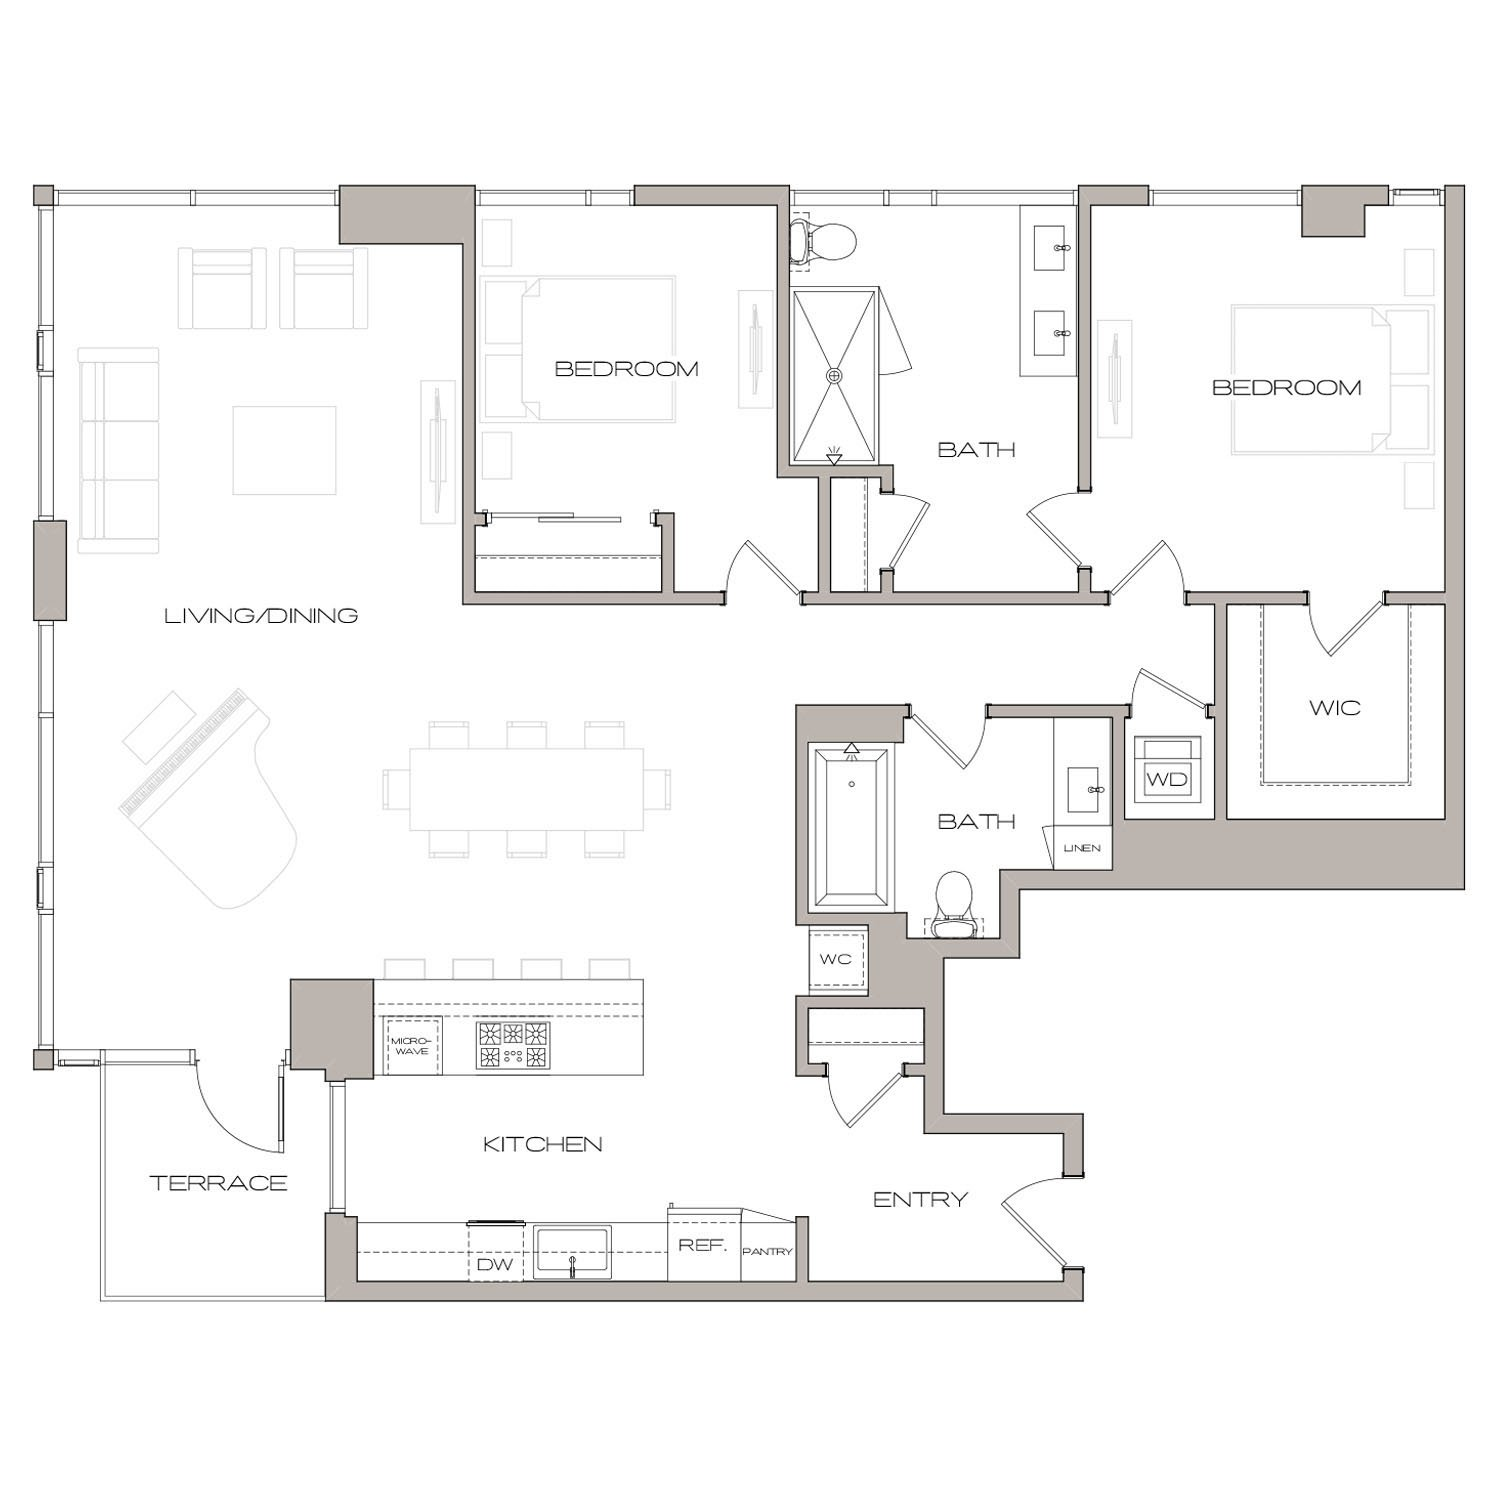 P H 1 floor plan diagram. Penthouse apartment with two bedrooms, two bathrooms, an open kitchen living and dining area,  a terrace, and a washer dryer.